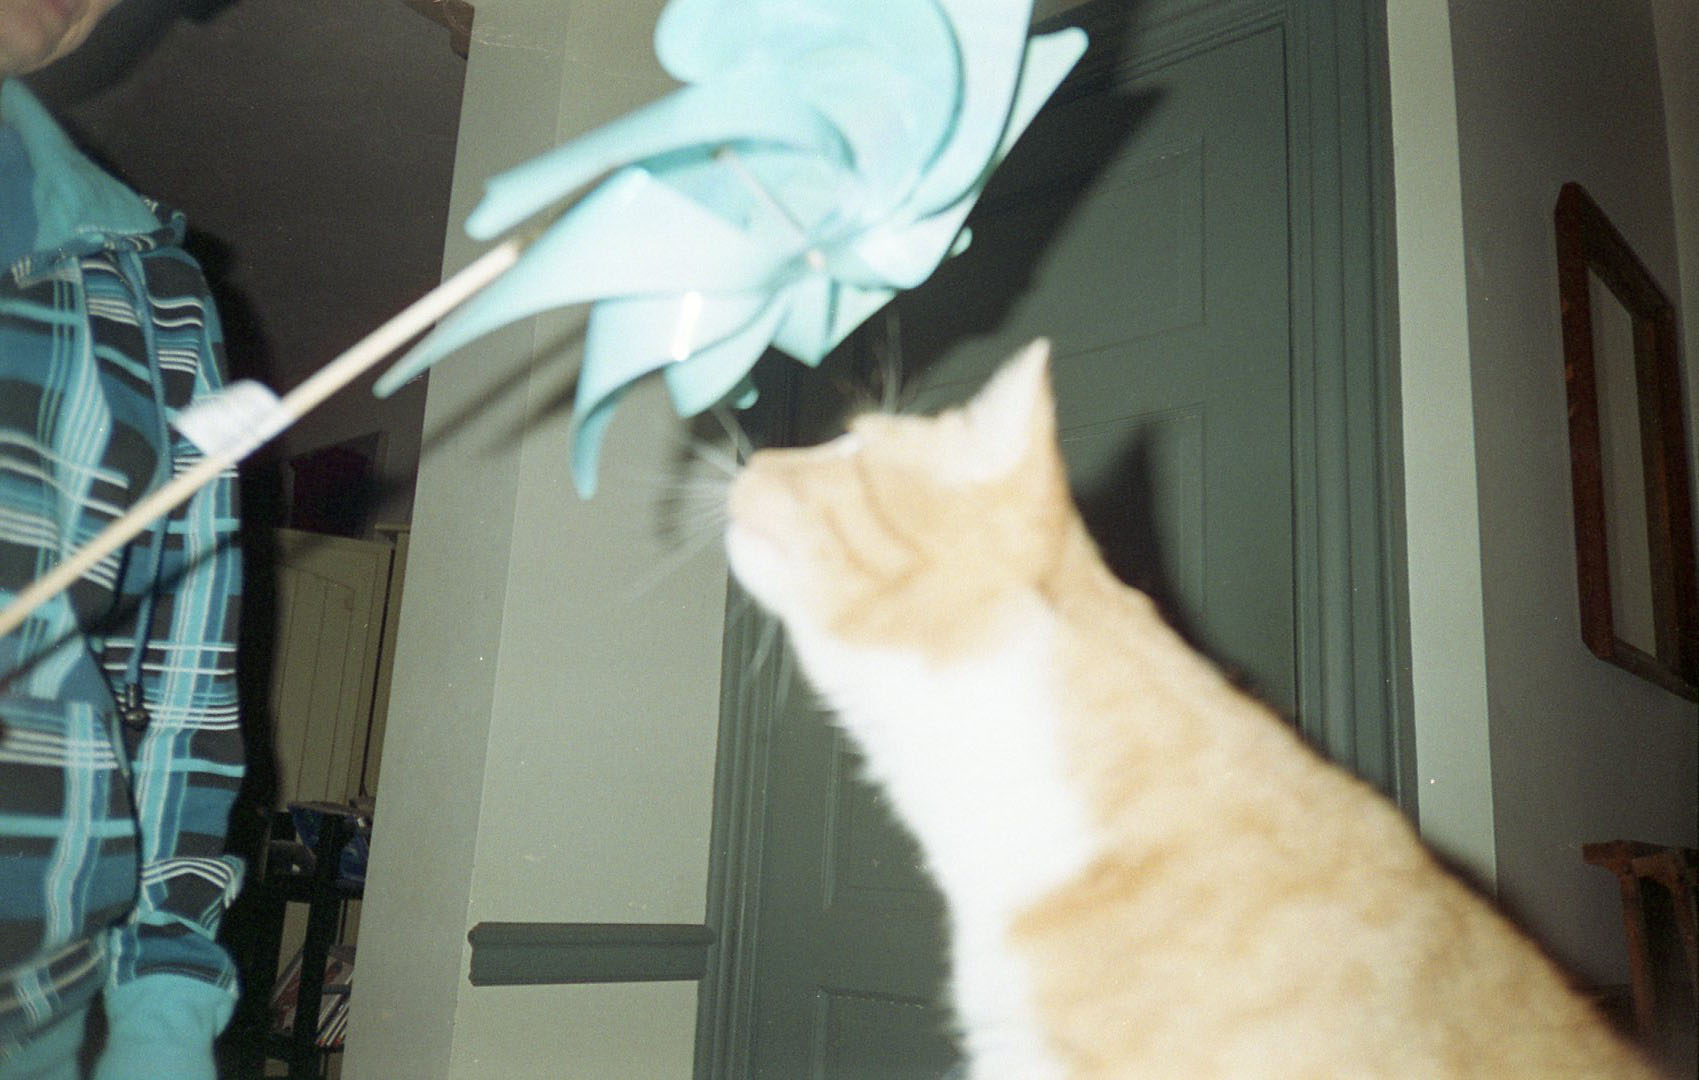 dali_with_pinwheel.jpg